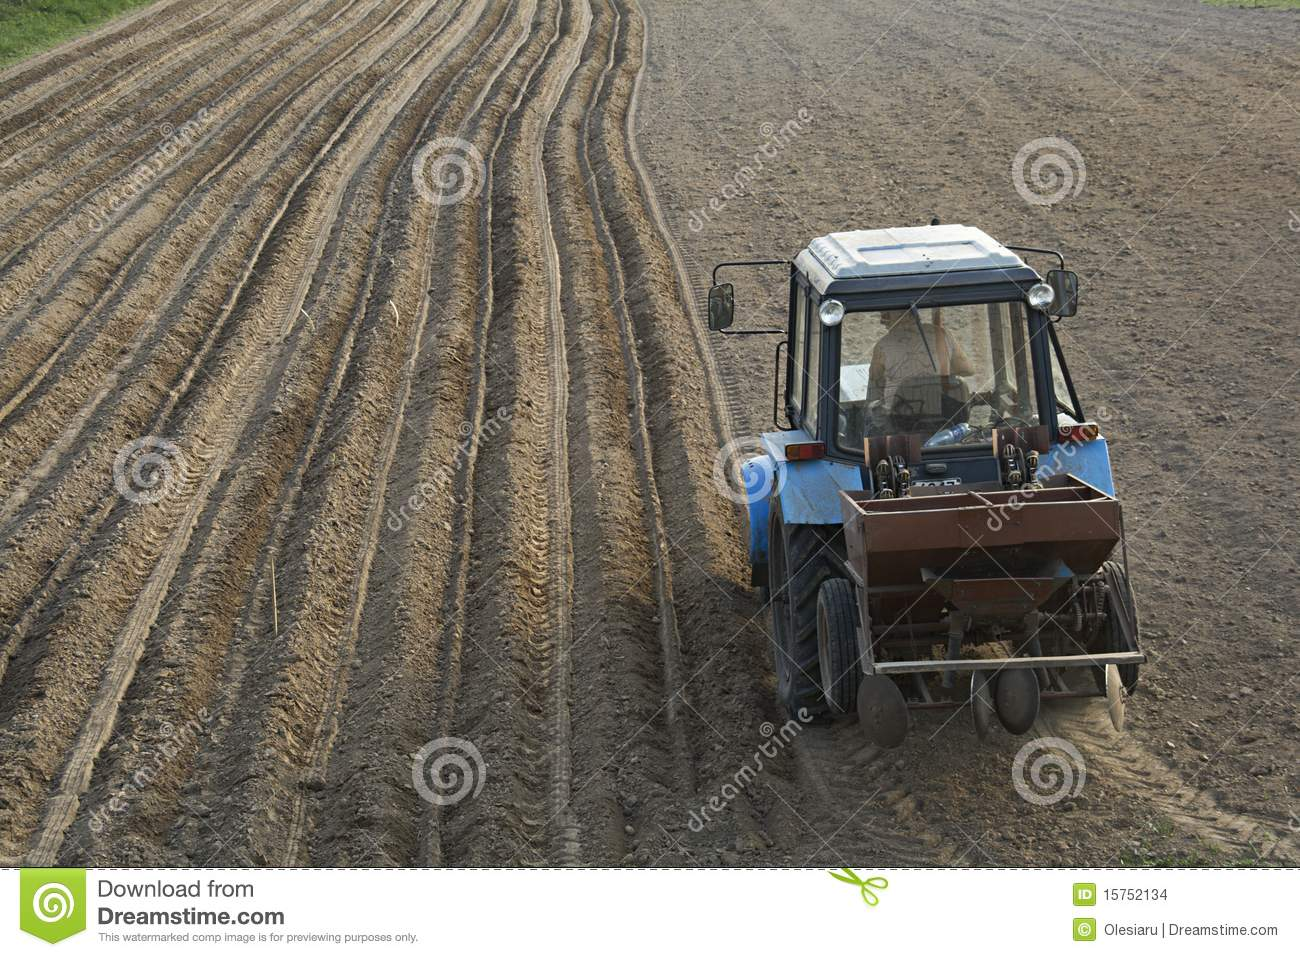 Tractor with sowing machine